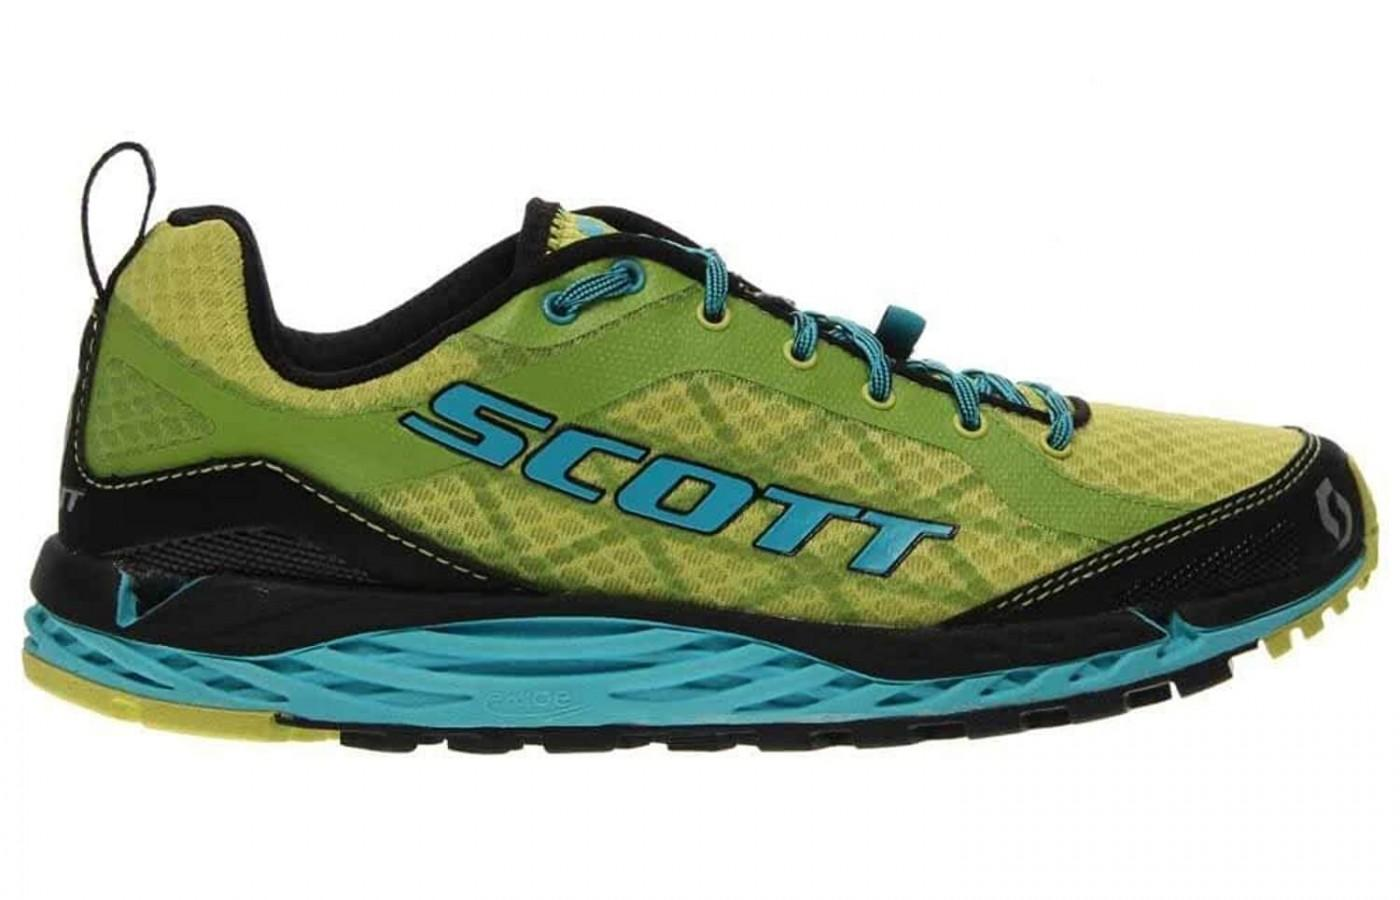 Runners can expect to see the signature Scott insignia along the side.